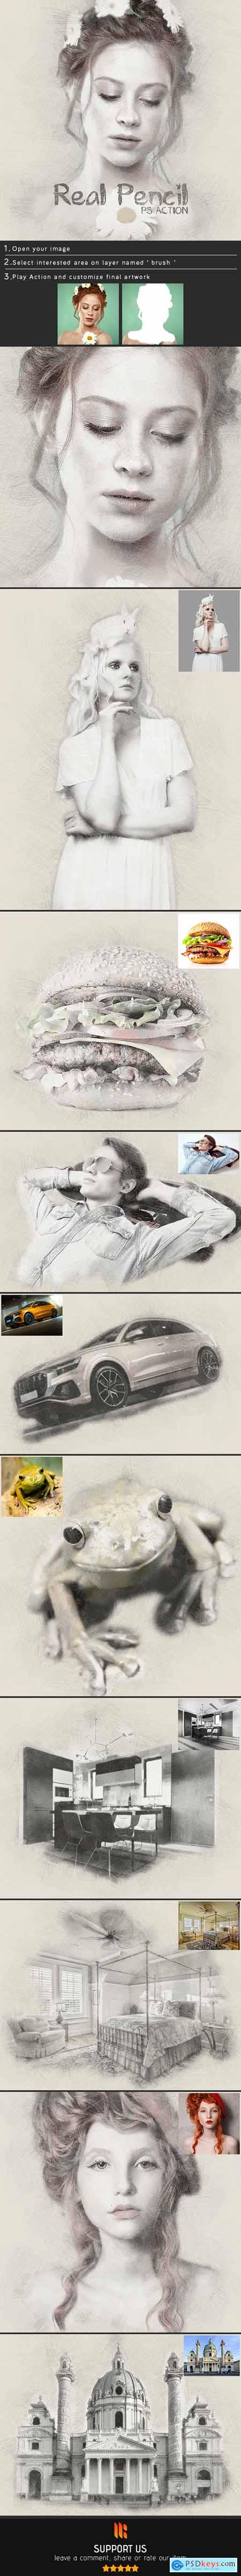 Real Pencil Photoshop Action 24968103